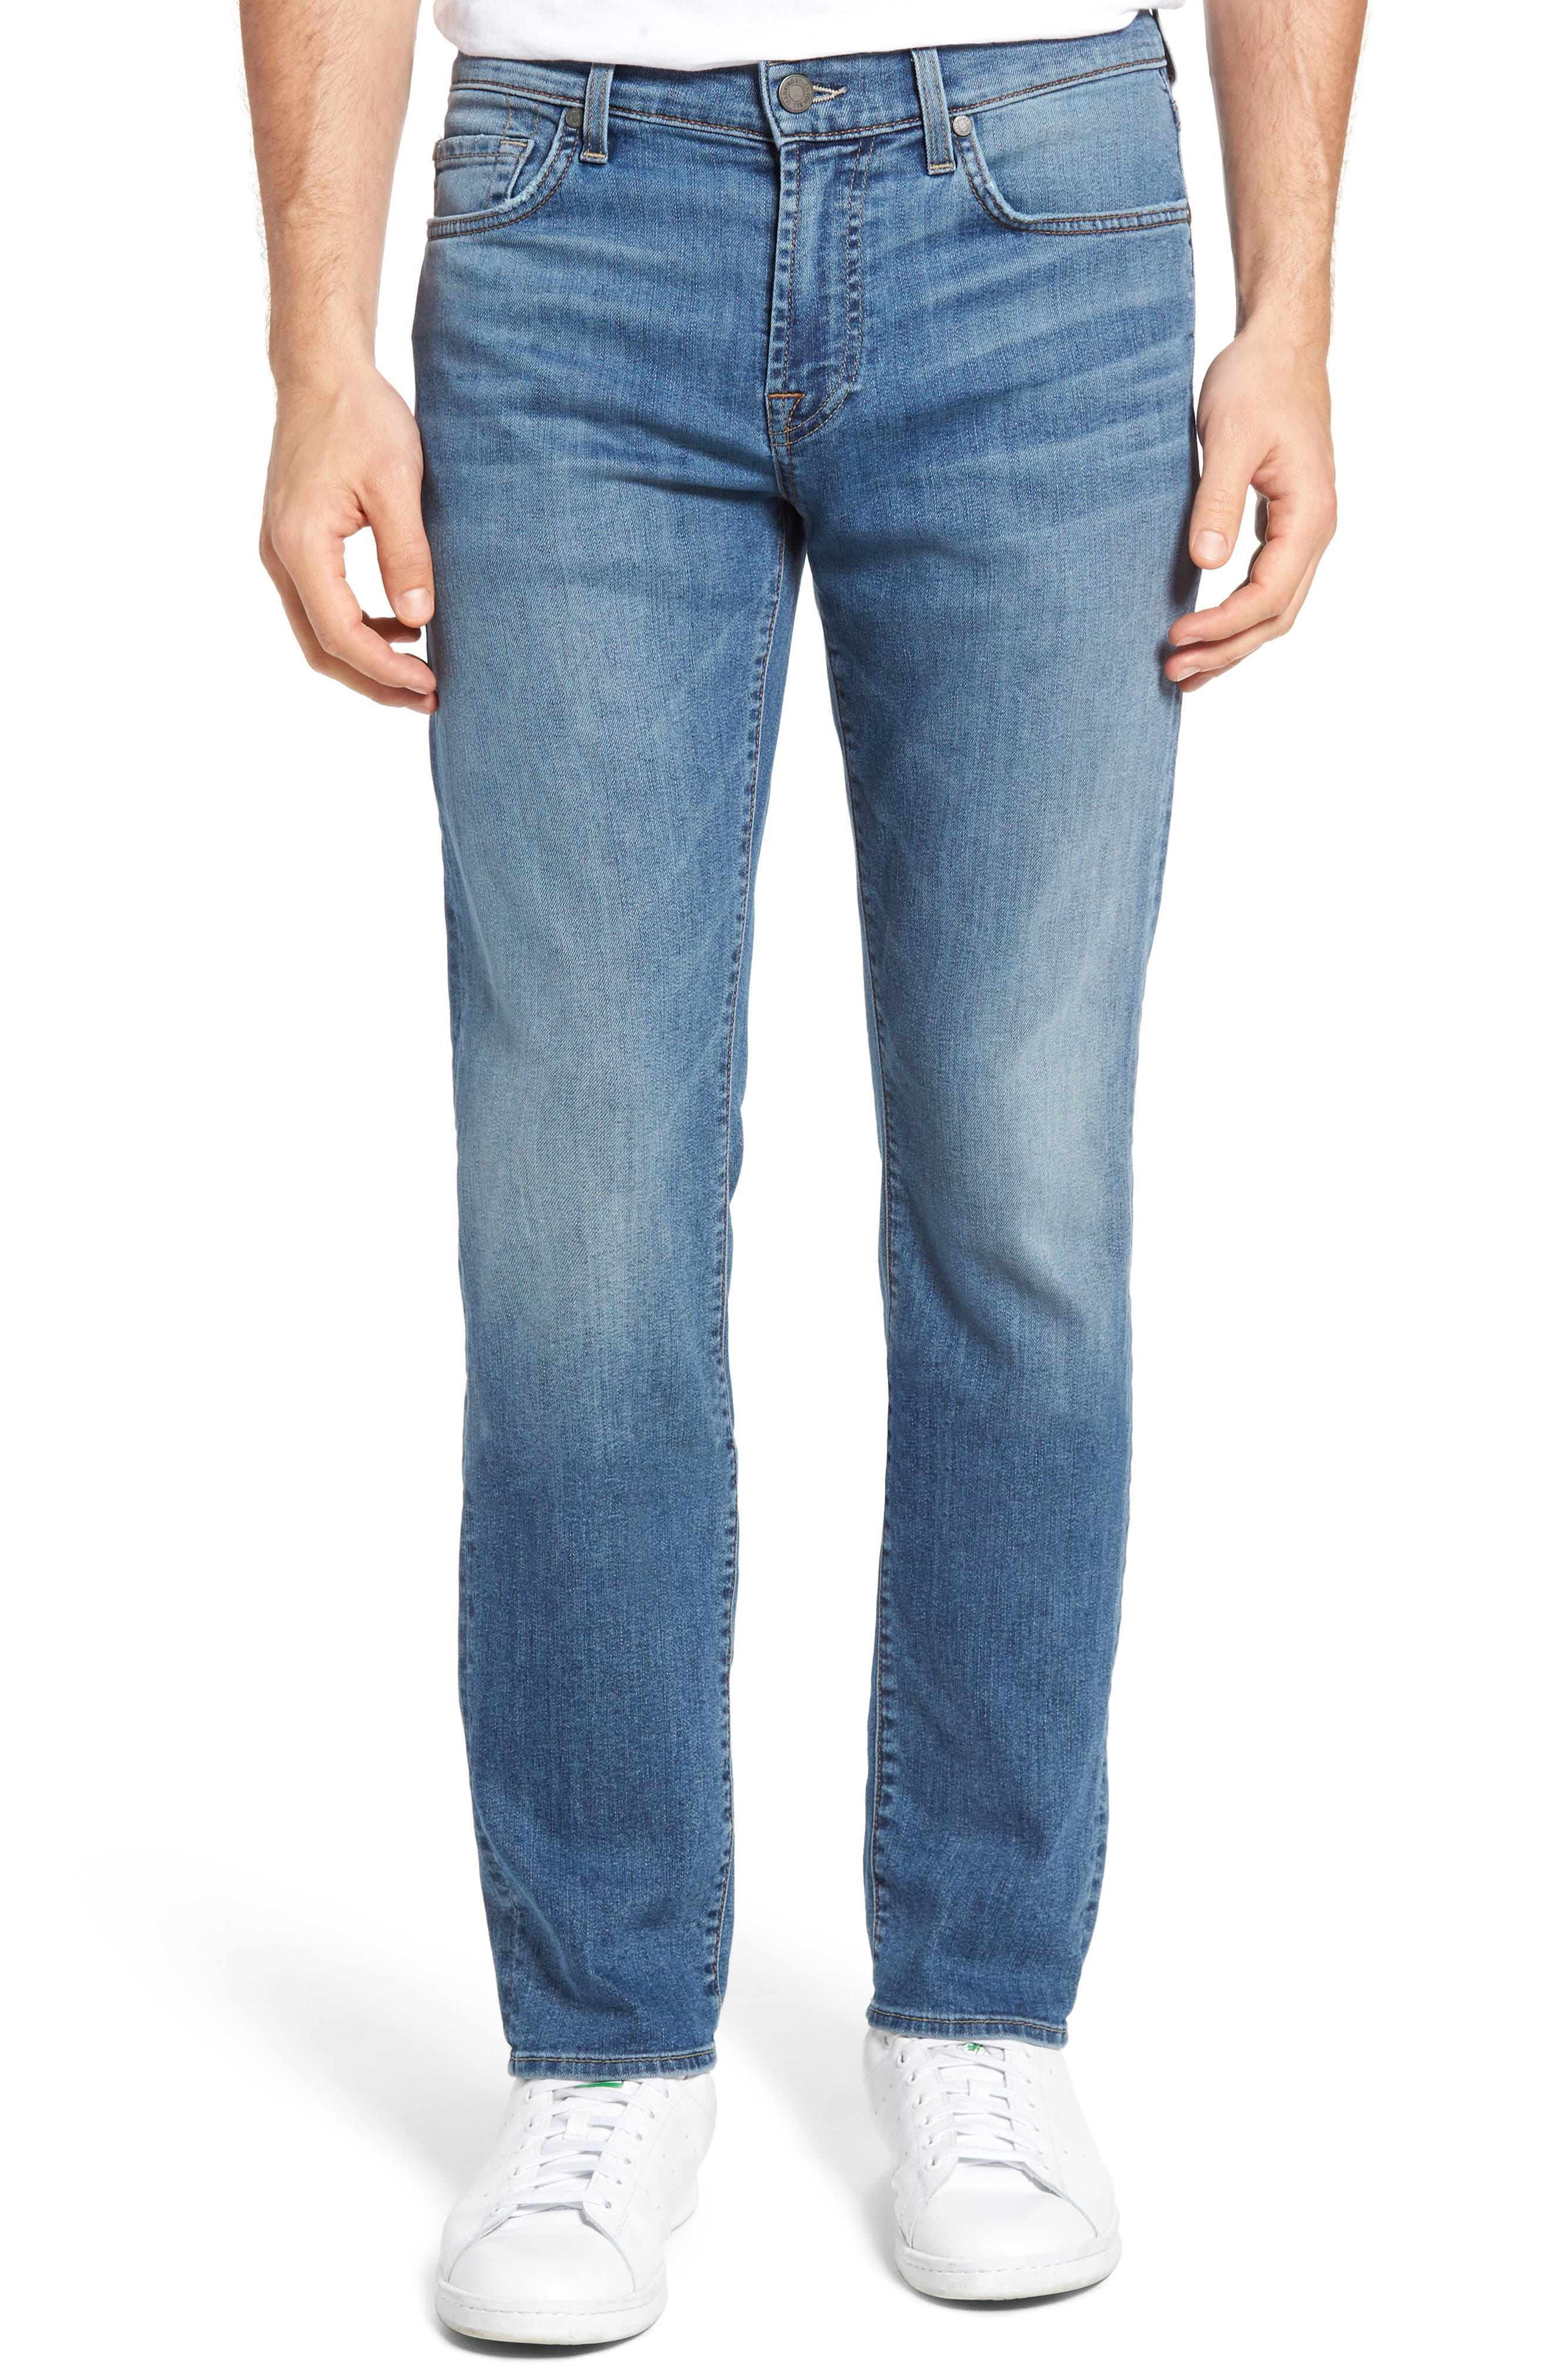 Alternate Image 1 Selected - 7 For All Mankind® Slimmy Slim Fit Jeans (Almafi Coast)